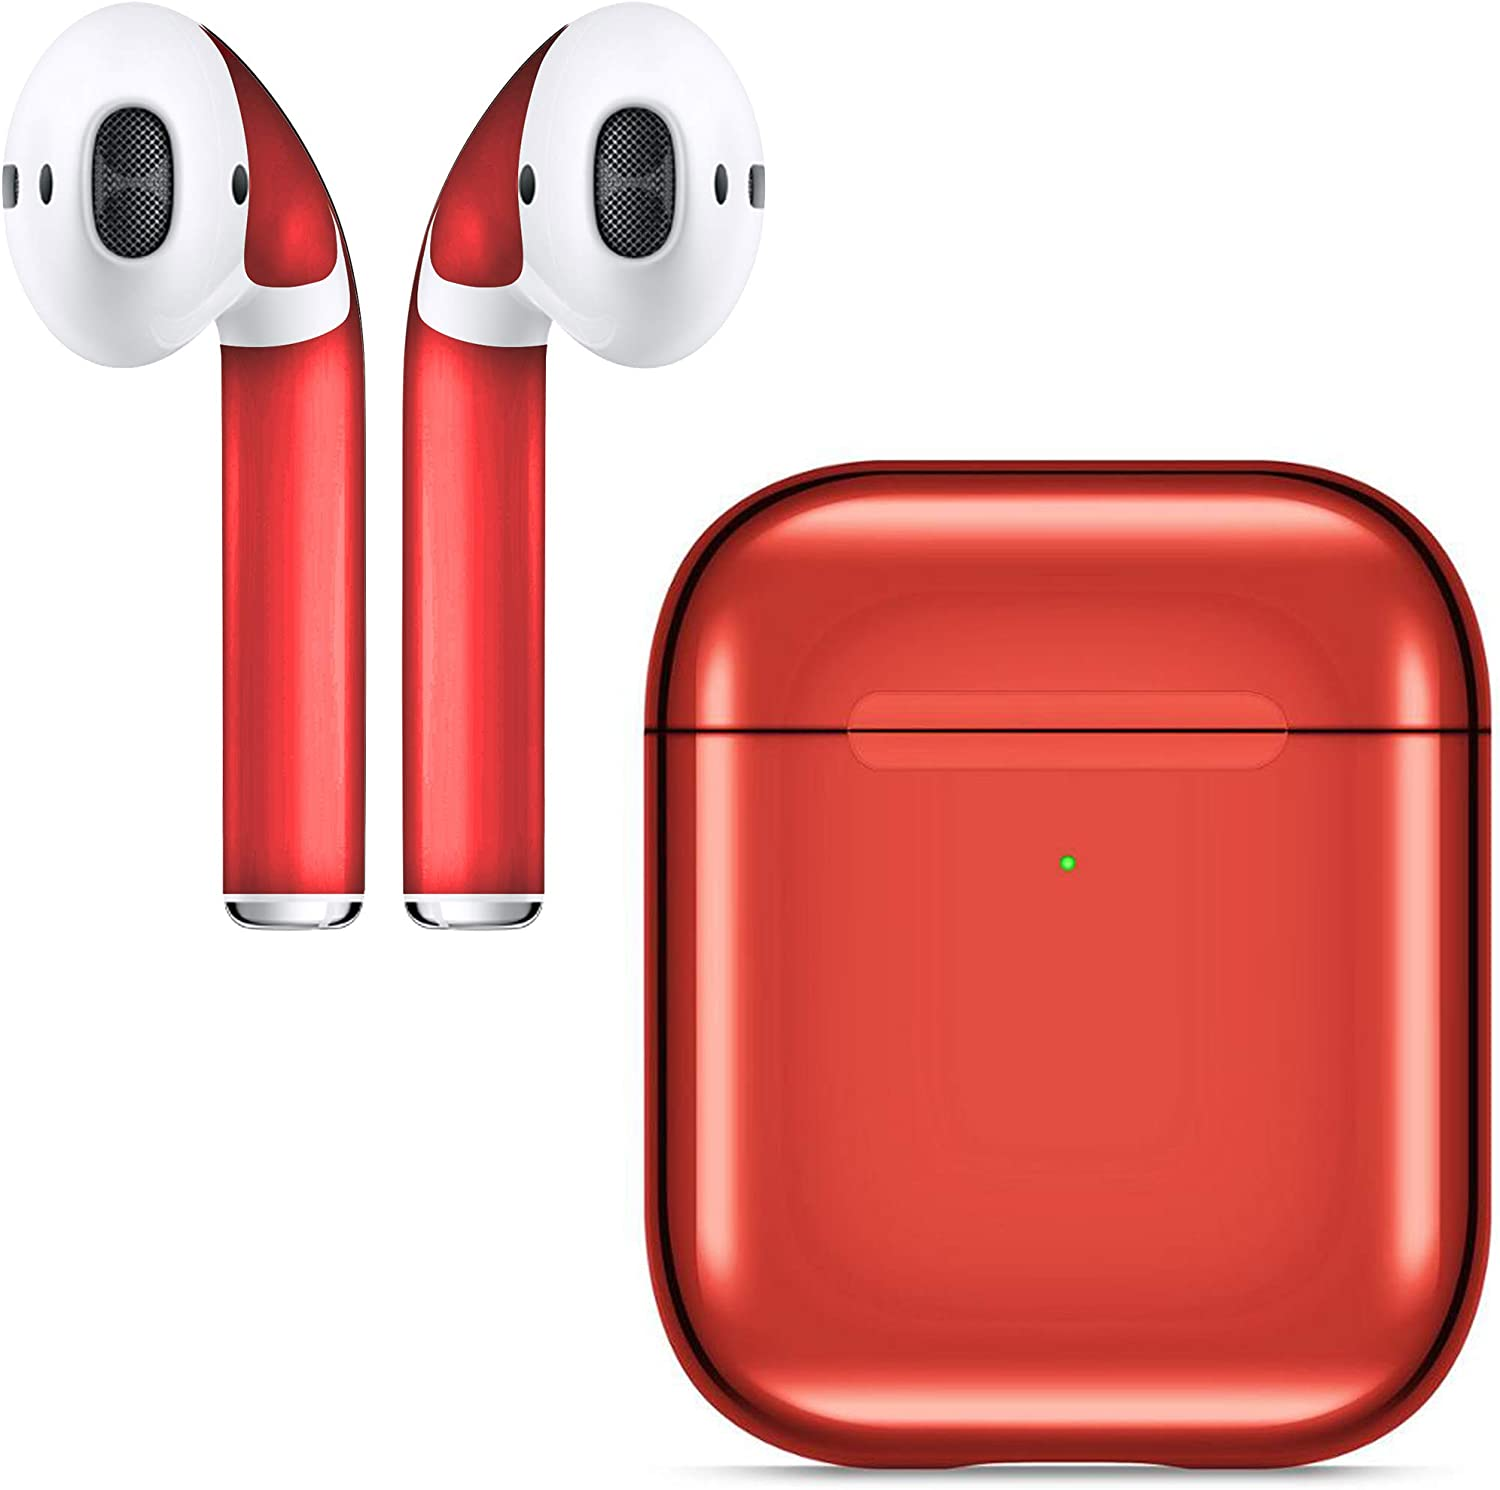 This Red Light Shows Up Even When My Airpods Are Fully Charged Is This A Problem For Other People Airpods